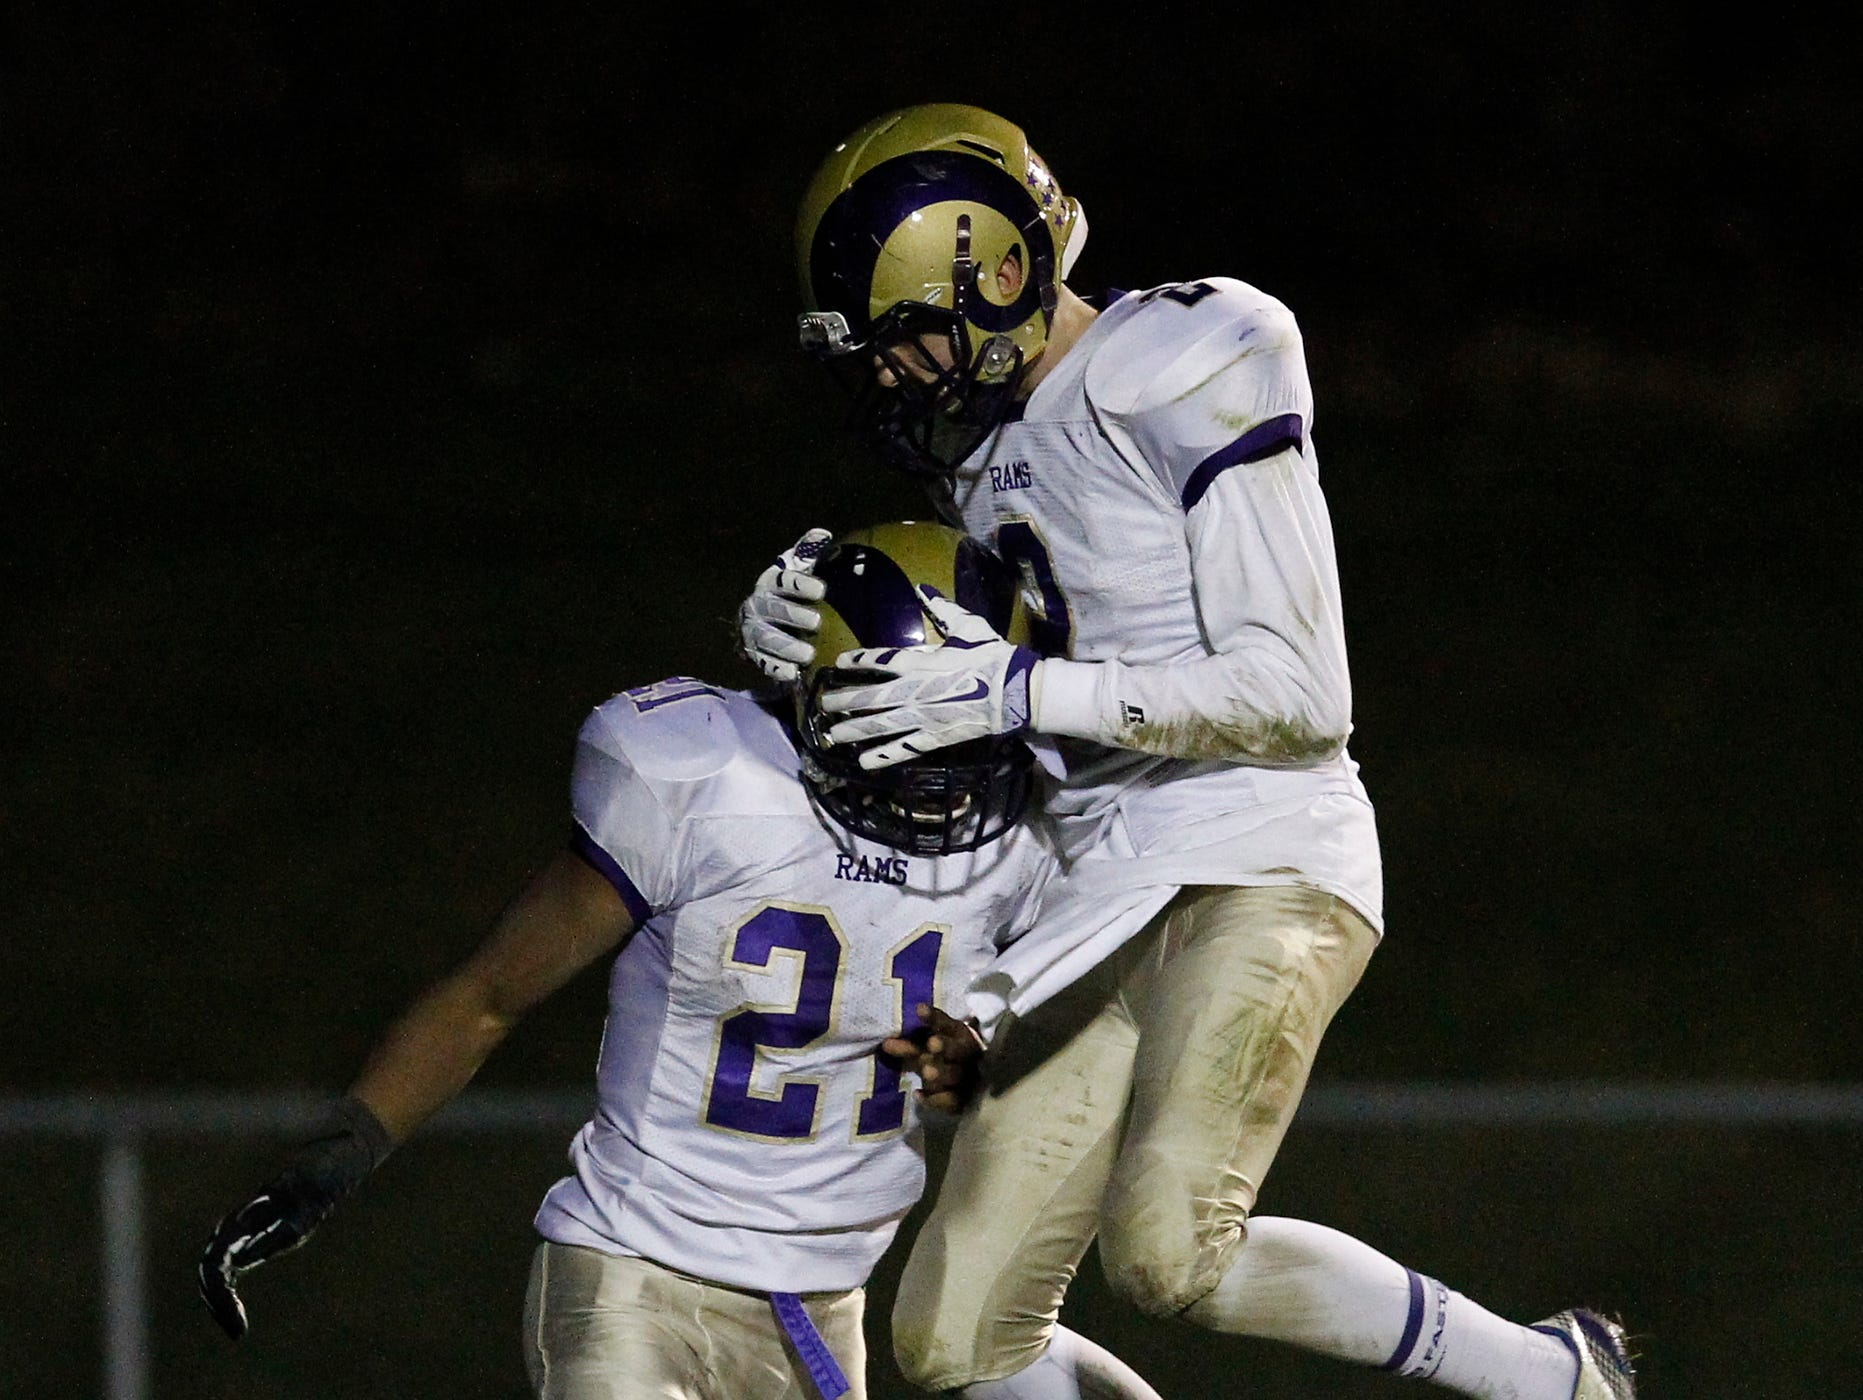 Clarkstown North's JR Levy (21) and Kevin Sheridan (2) react to a touchdown during their 21-7 loss to John Jay High School in the class AA semi-final football game in East Fishkill on Friday, Oct. 30, 2015.